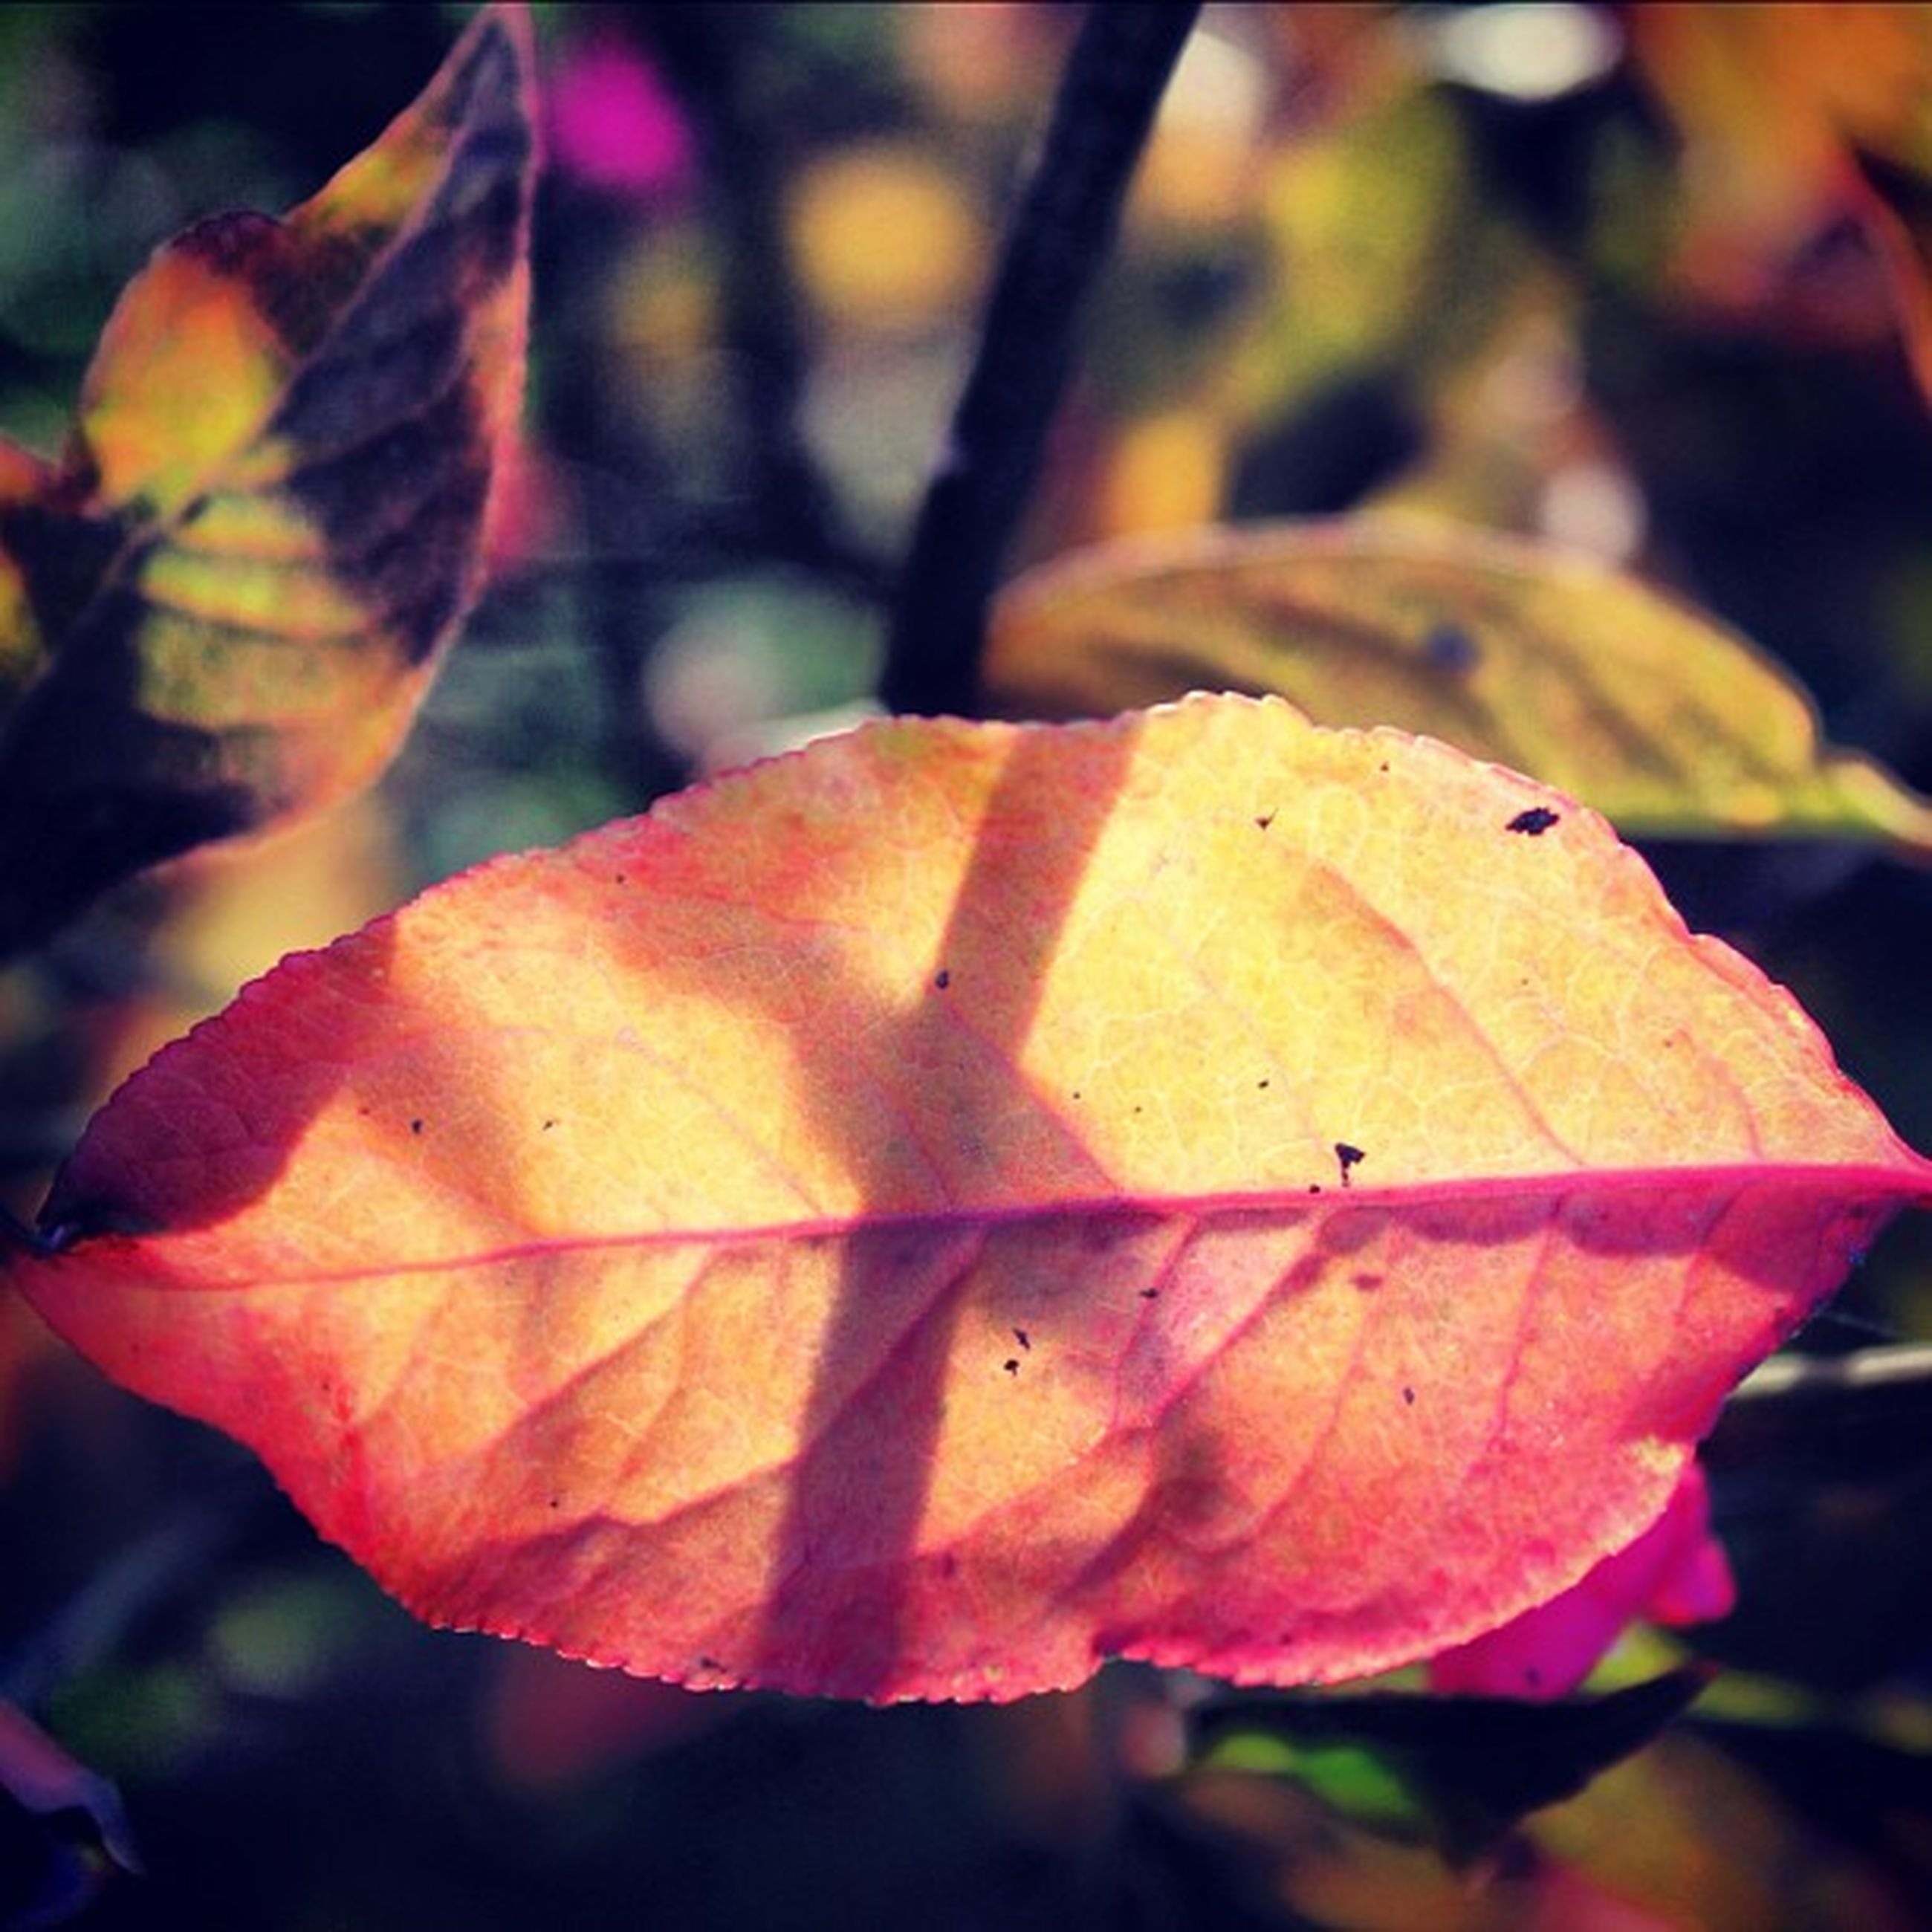 focus on foreground, close-up, orange color, leaf, autumn, nature, growth, change, leaf vein, beauty in nature, branch, natural pattern, outdoors, season, selective focus, tree, plant, fragility, no people, day